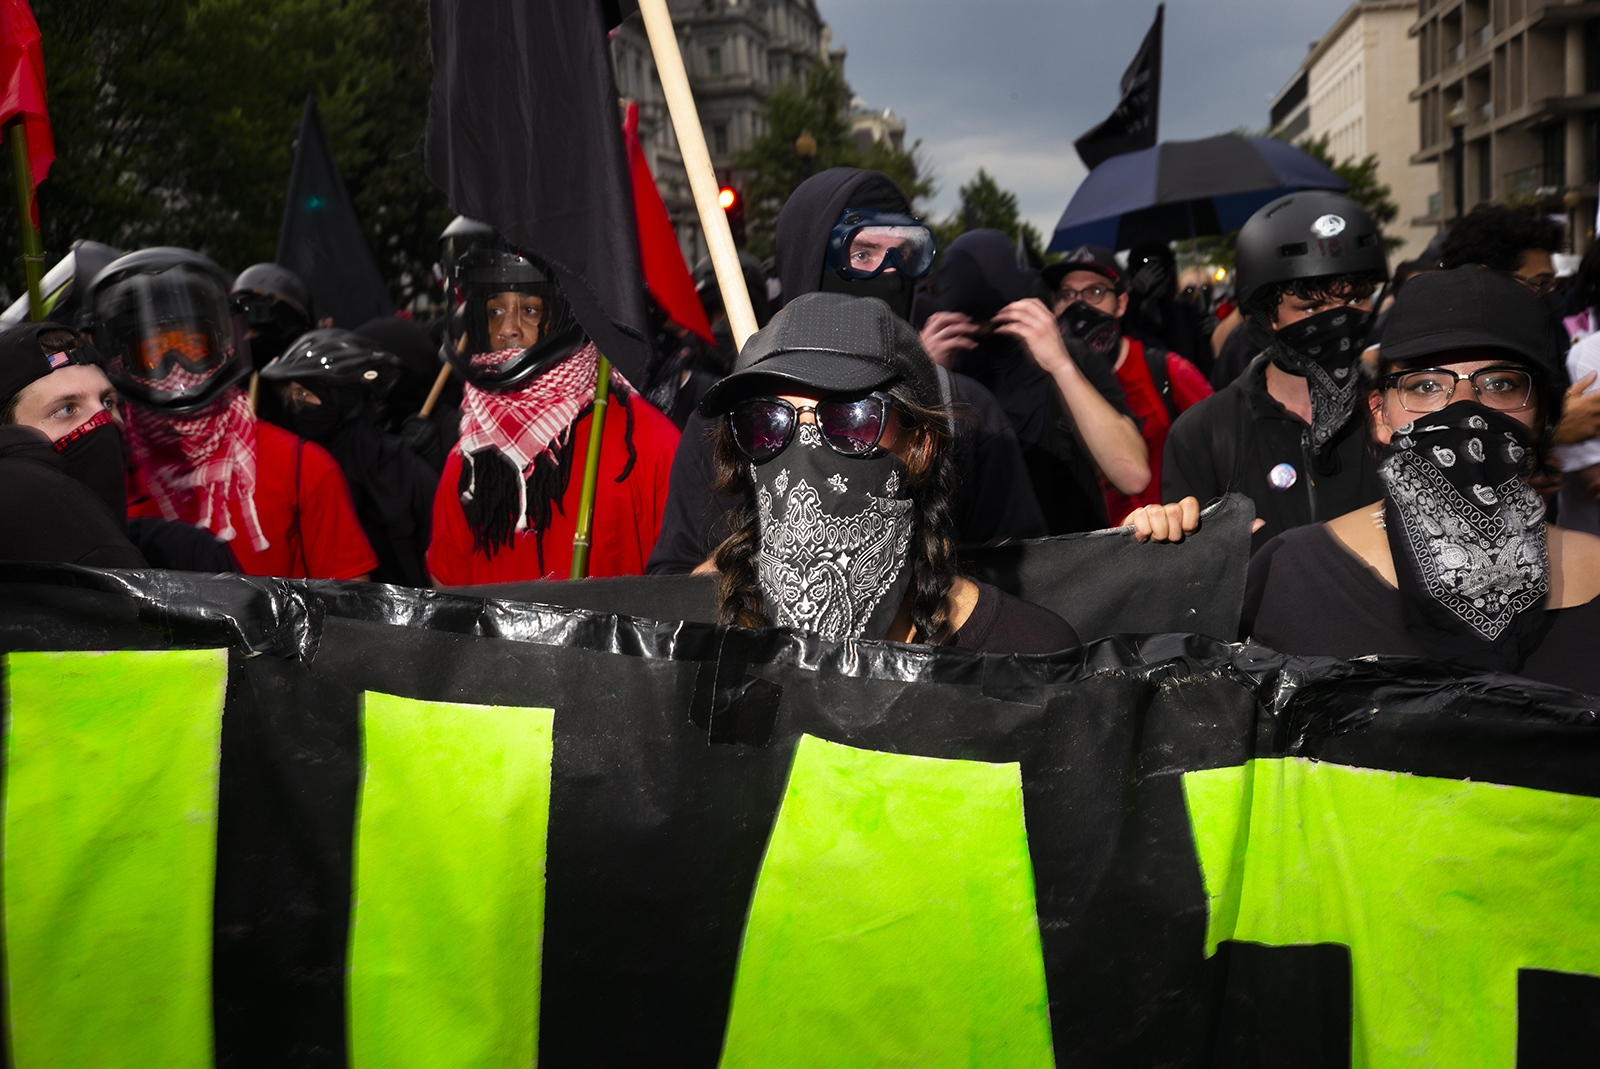 Members of Antifa protest near the White House during a Unite the Right rally on August 12, 2018. Less than 30 white supremacists came to DC for the protest while thousands of peaceful protestors and around 100 Antifa activists showed up to counter.